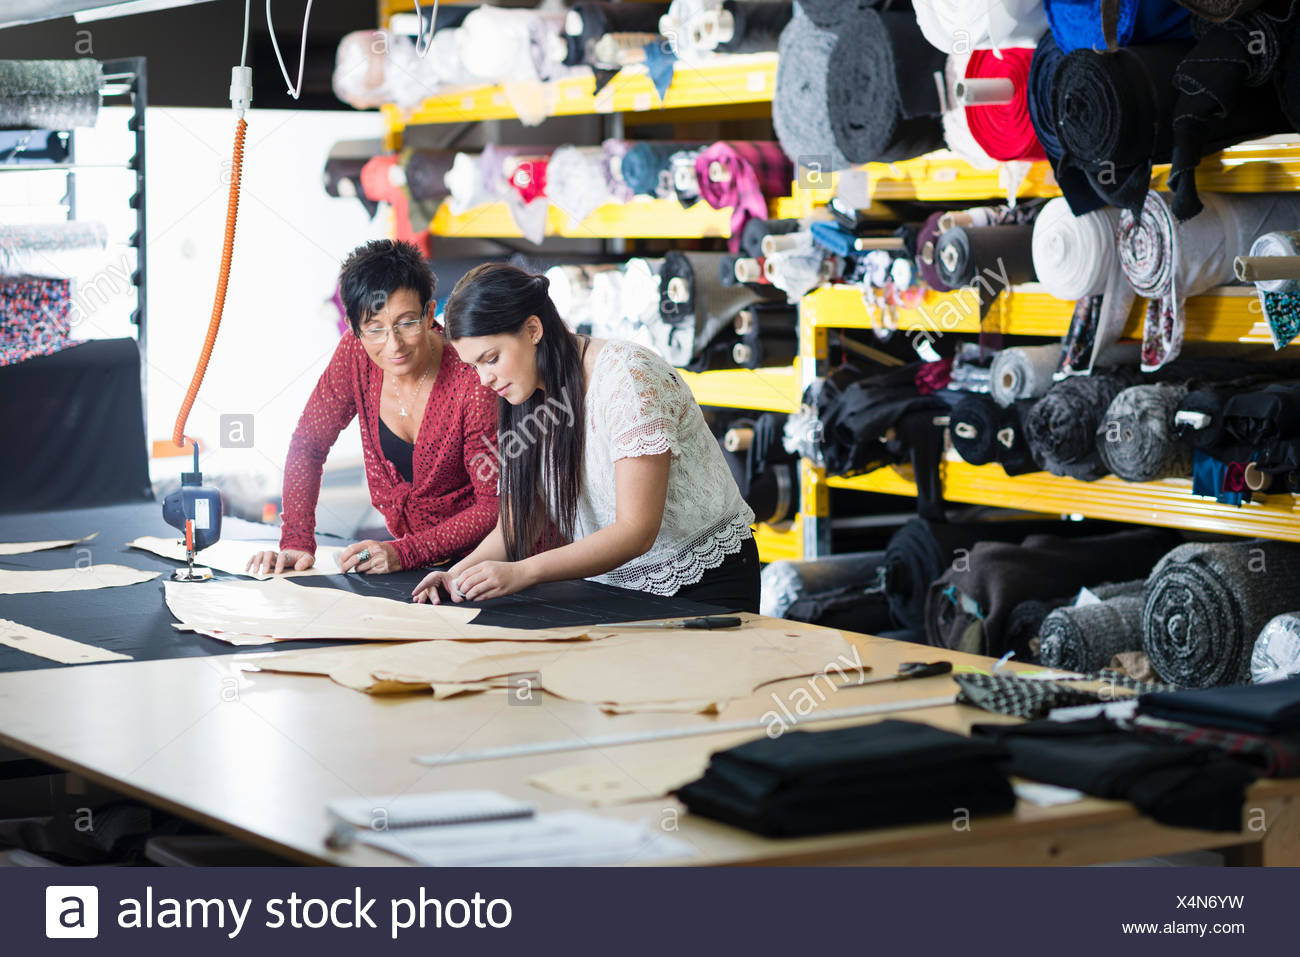 Two seamstresses chalking design onto textile on work table - Stock Image